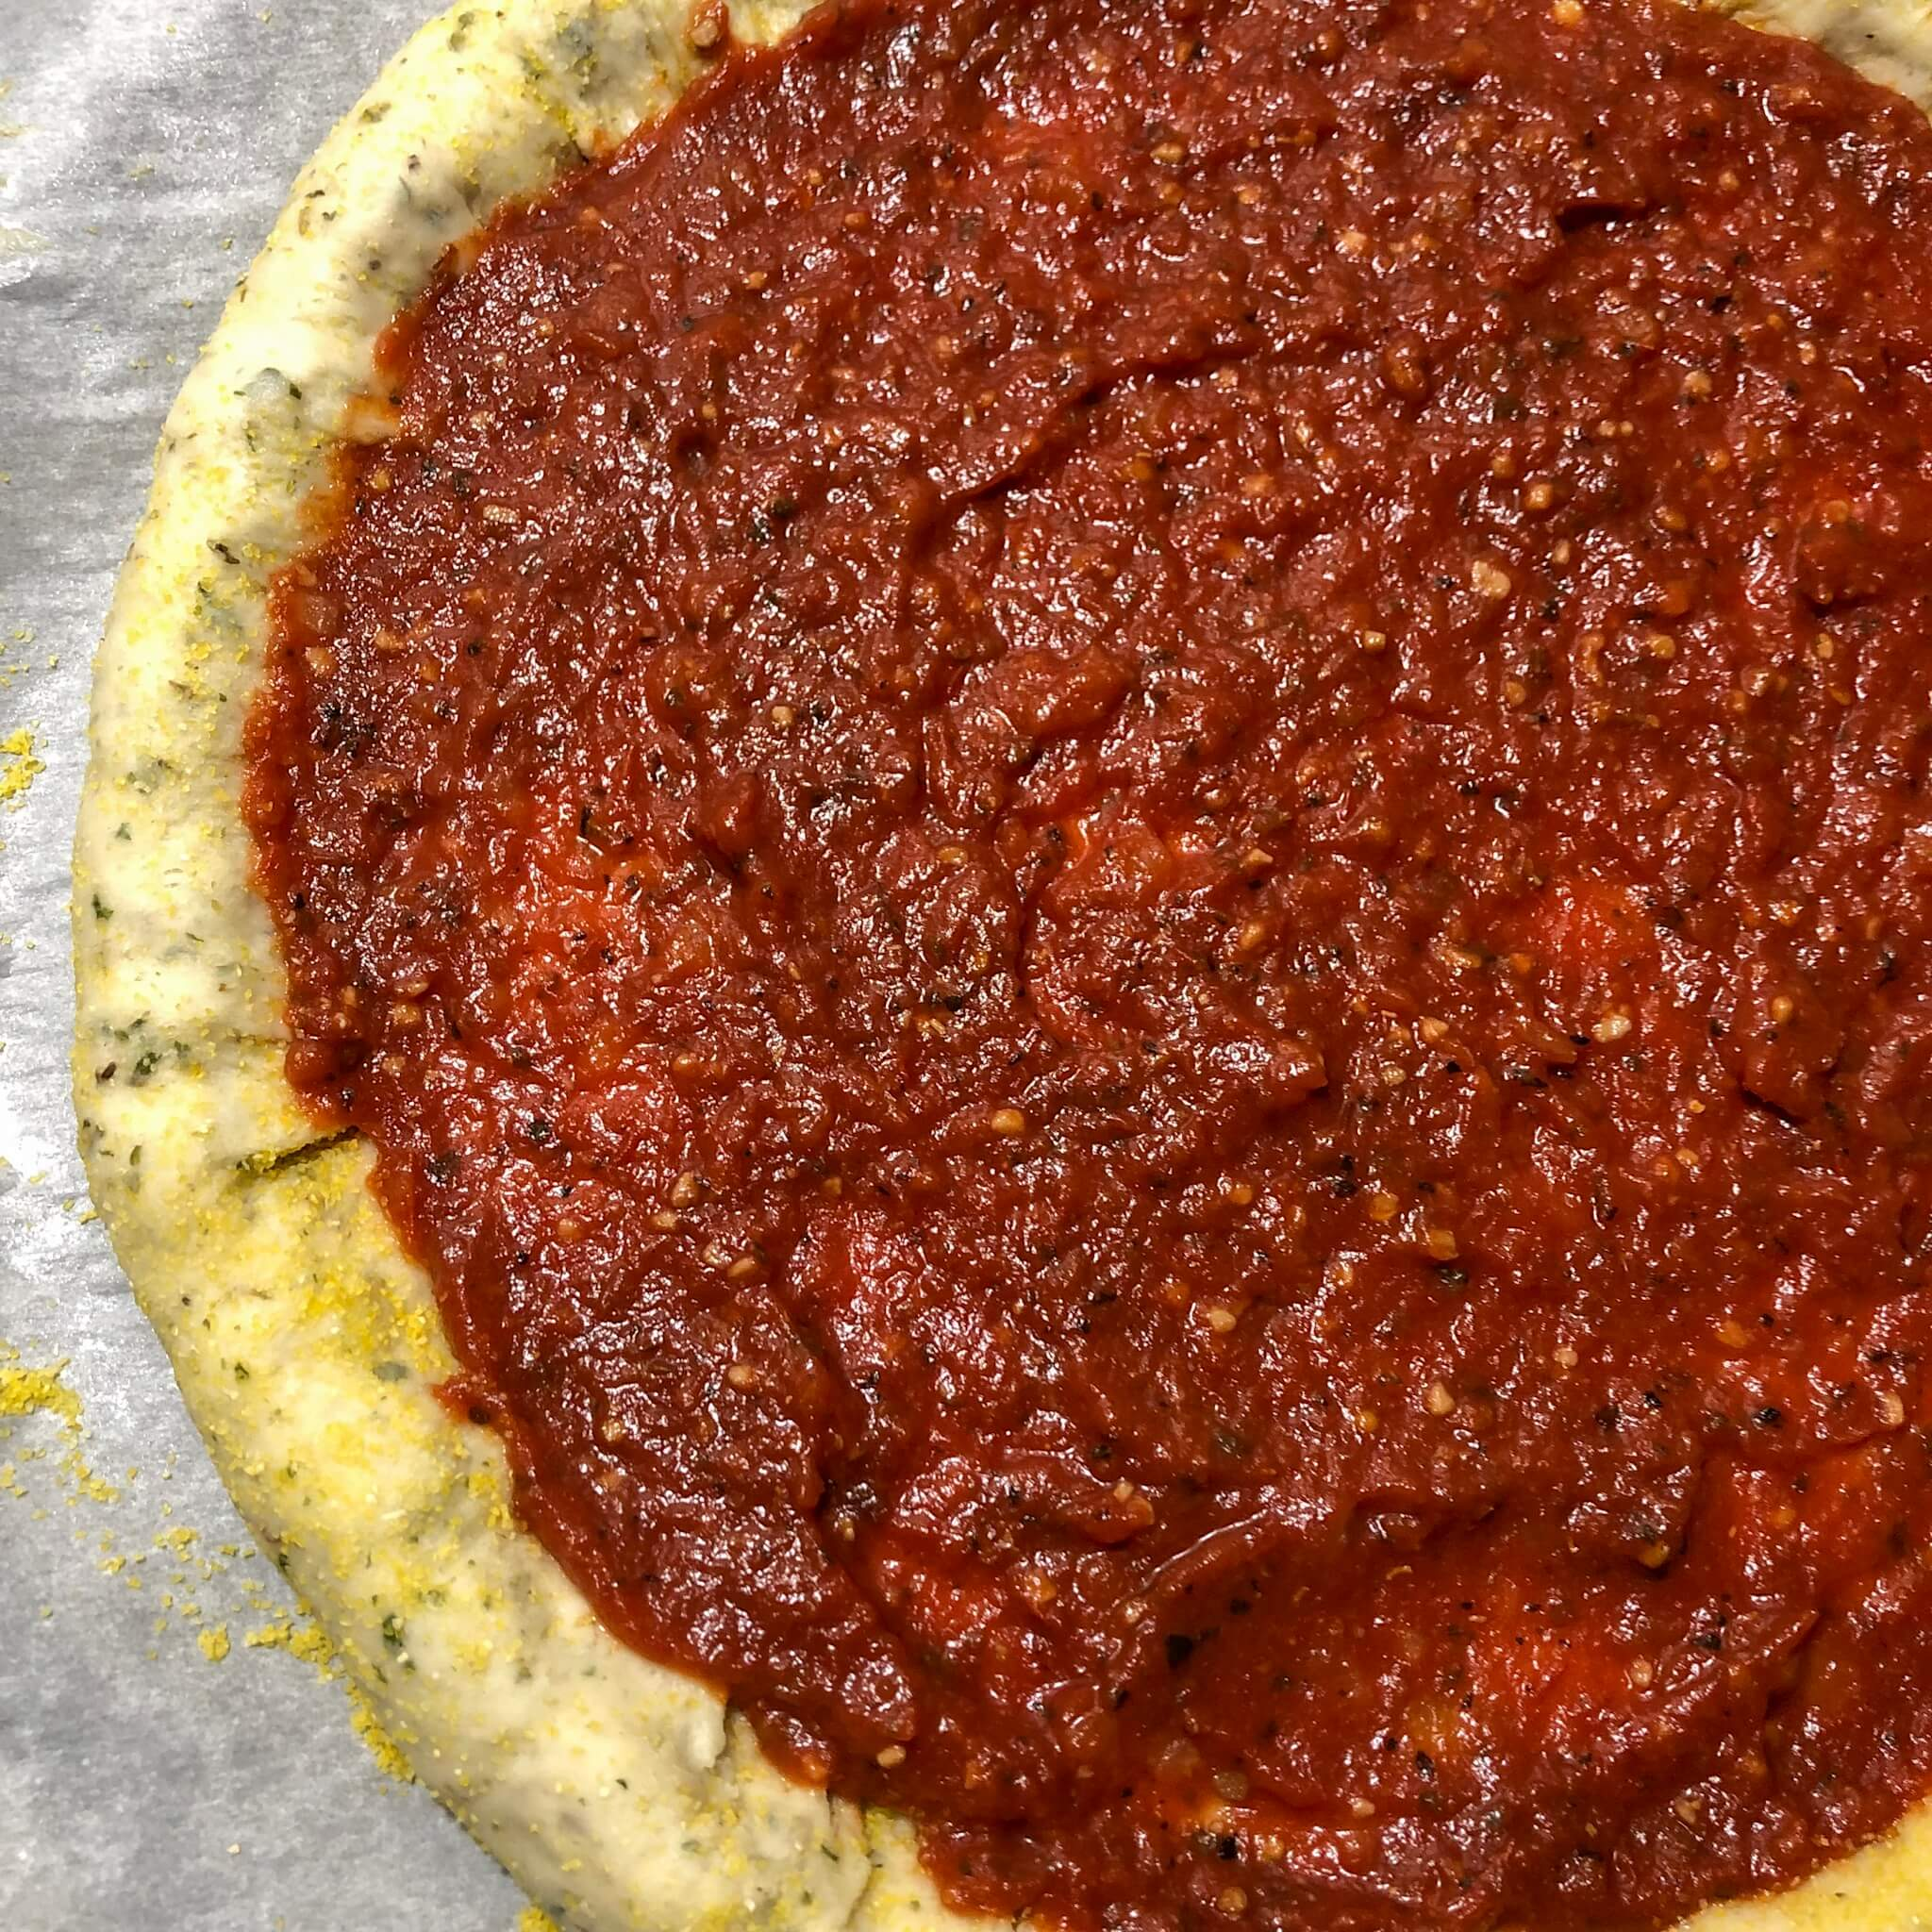 vegan pizza recipe with sauce and stuffed crust